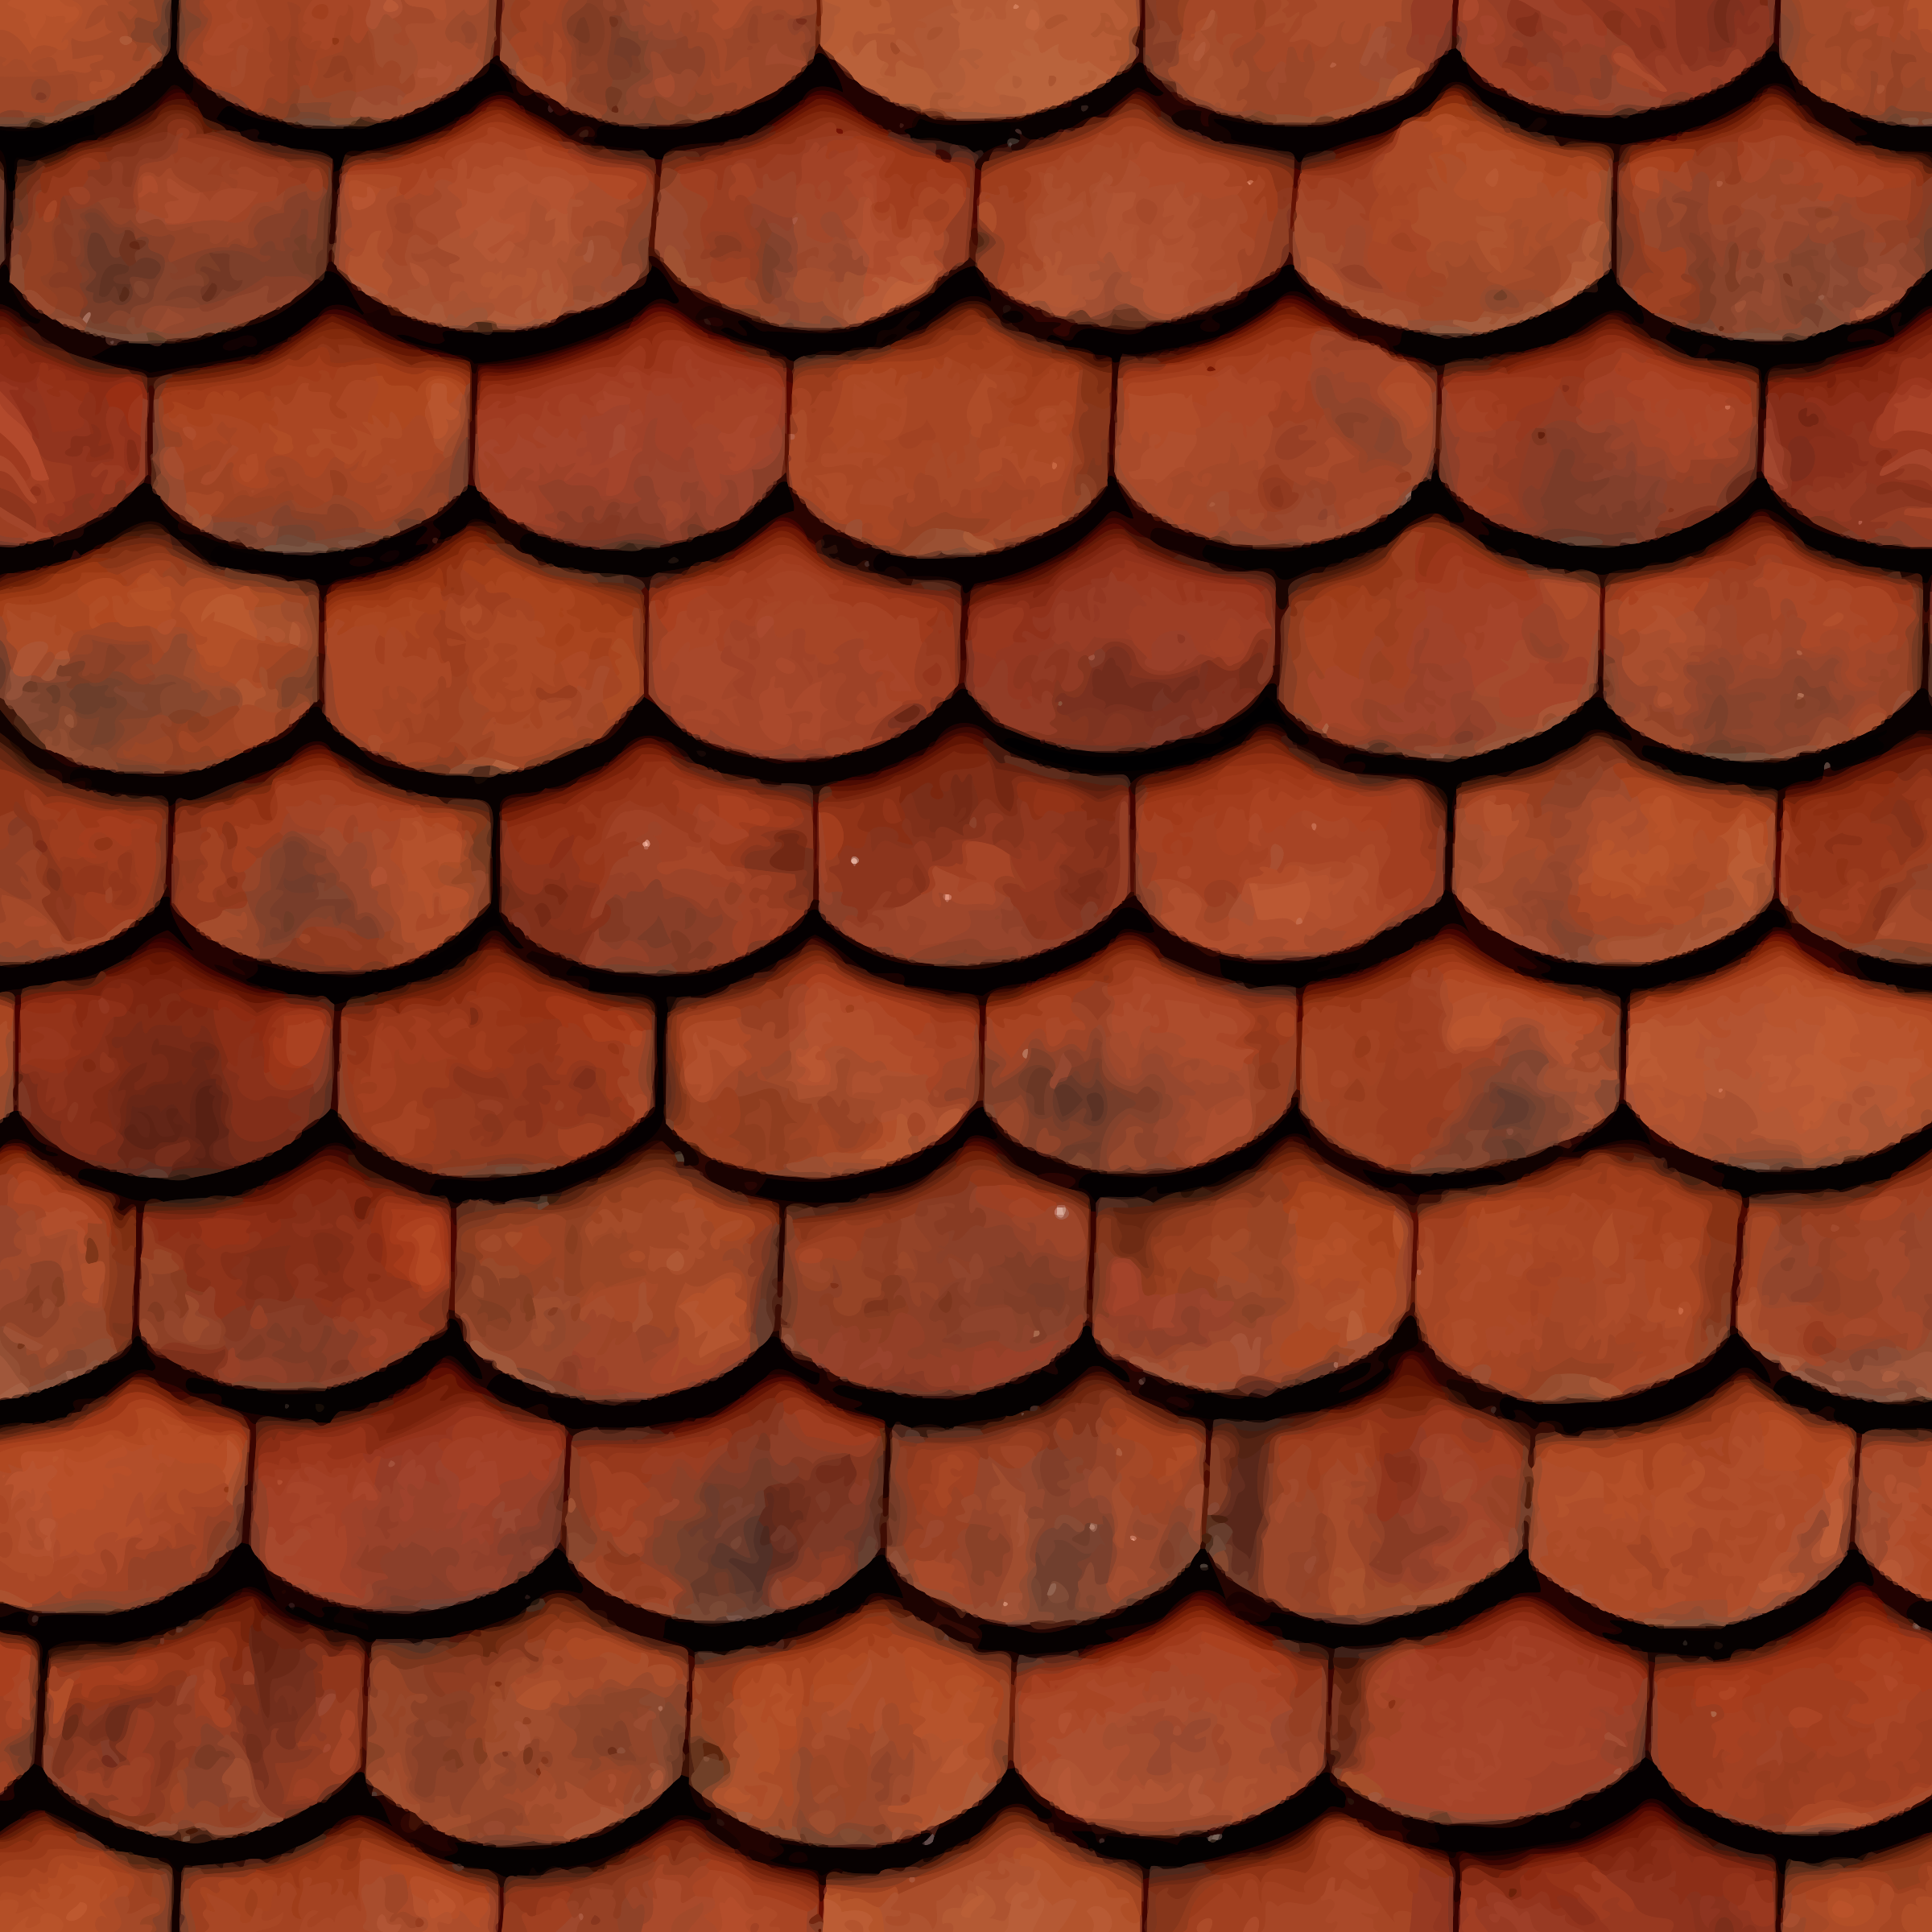 Roofing Tiles Clipart 20 Free Cliparts Download Images